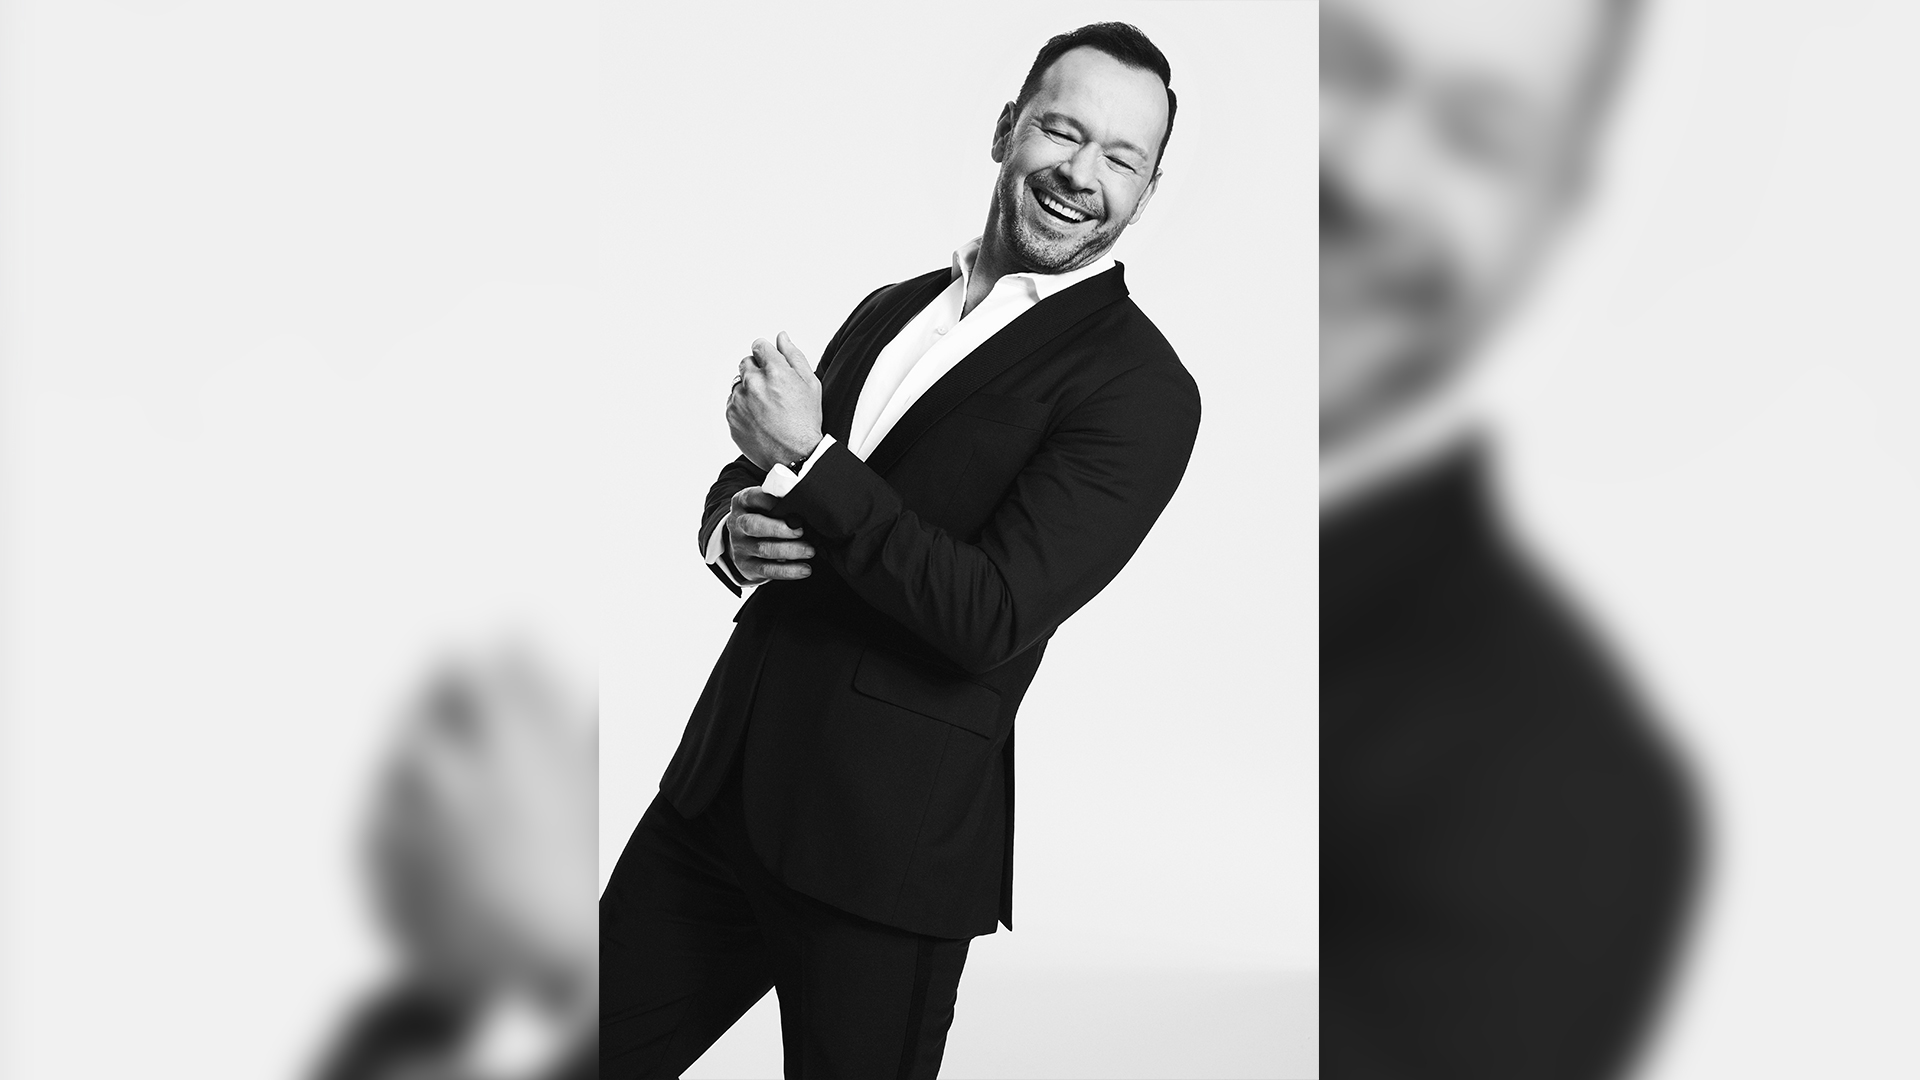 Donnie Wahlberg likes to laugh